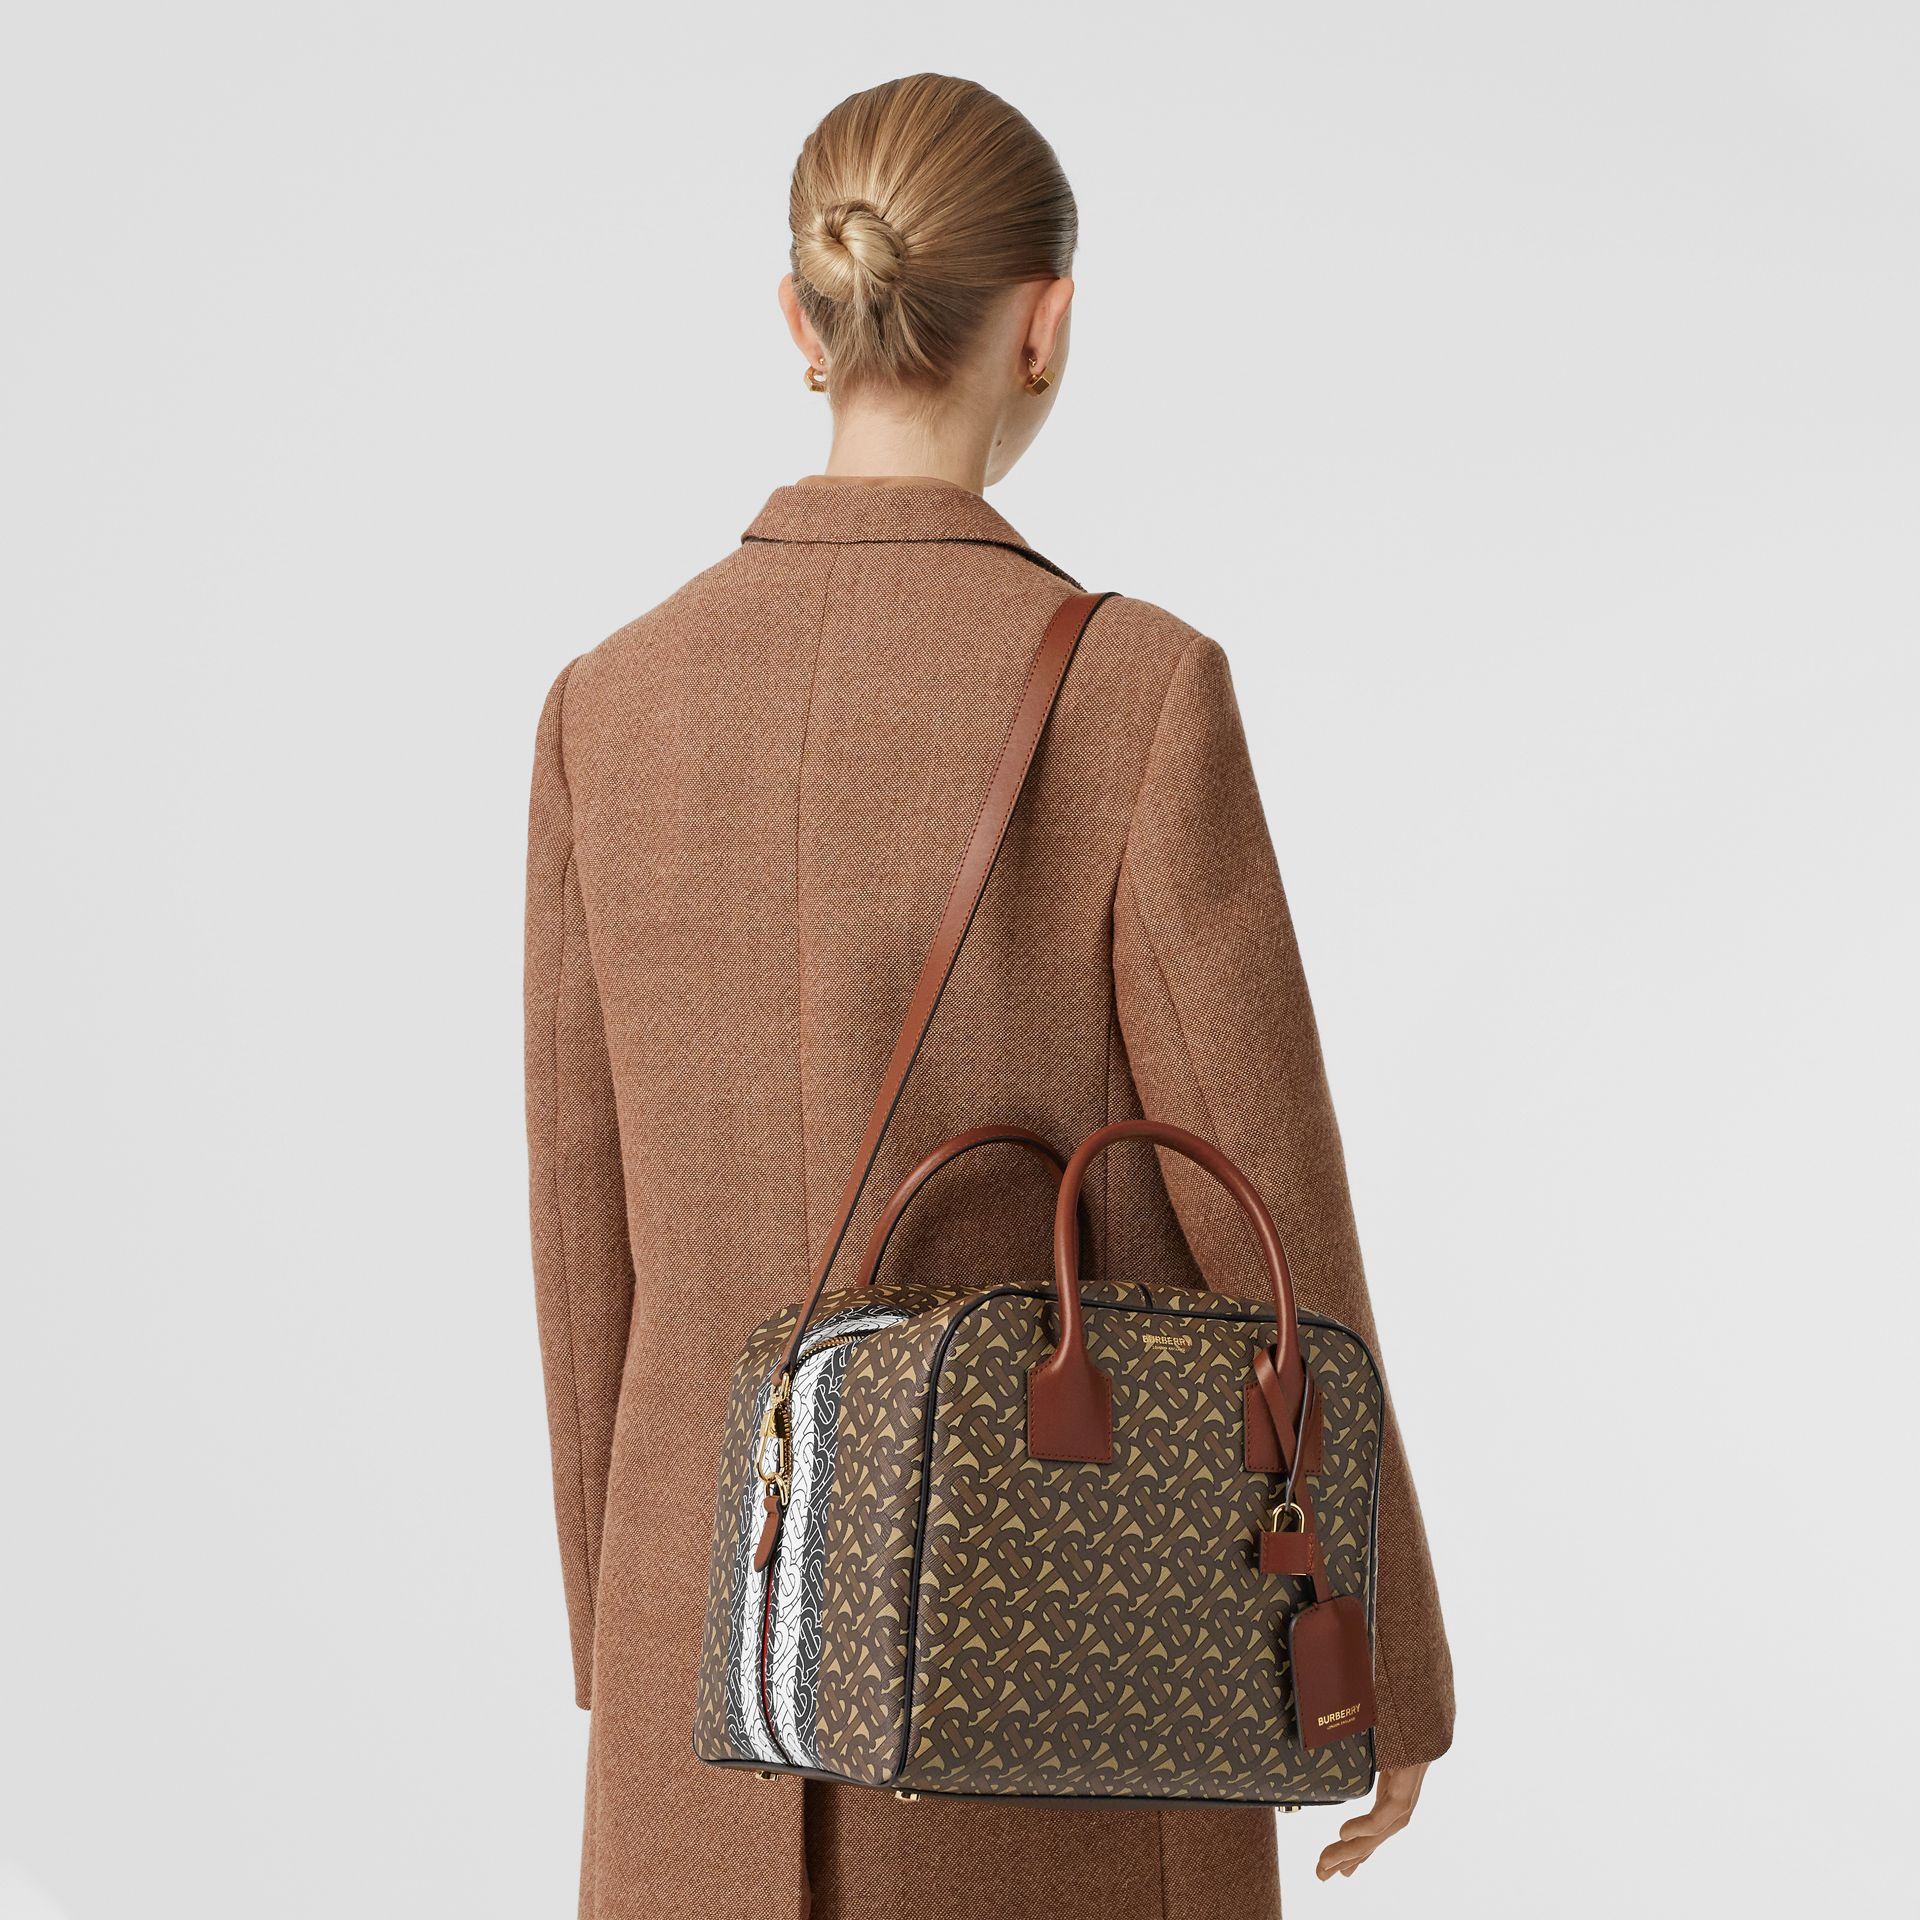 Borsa Cube media in e-canvas con stampa monogramma a righe (Marrone Redini) - Donna | Burberry - immagine della galleria 2